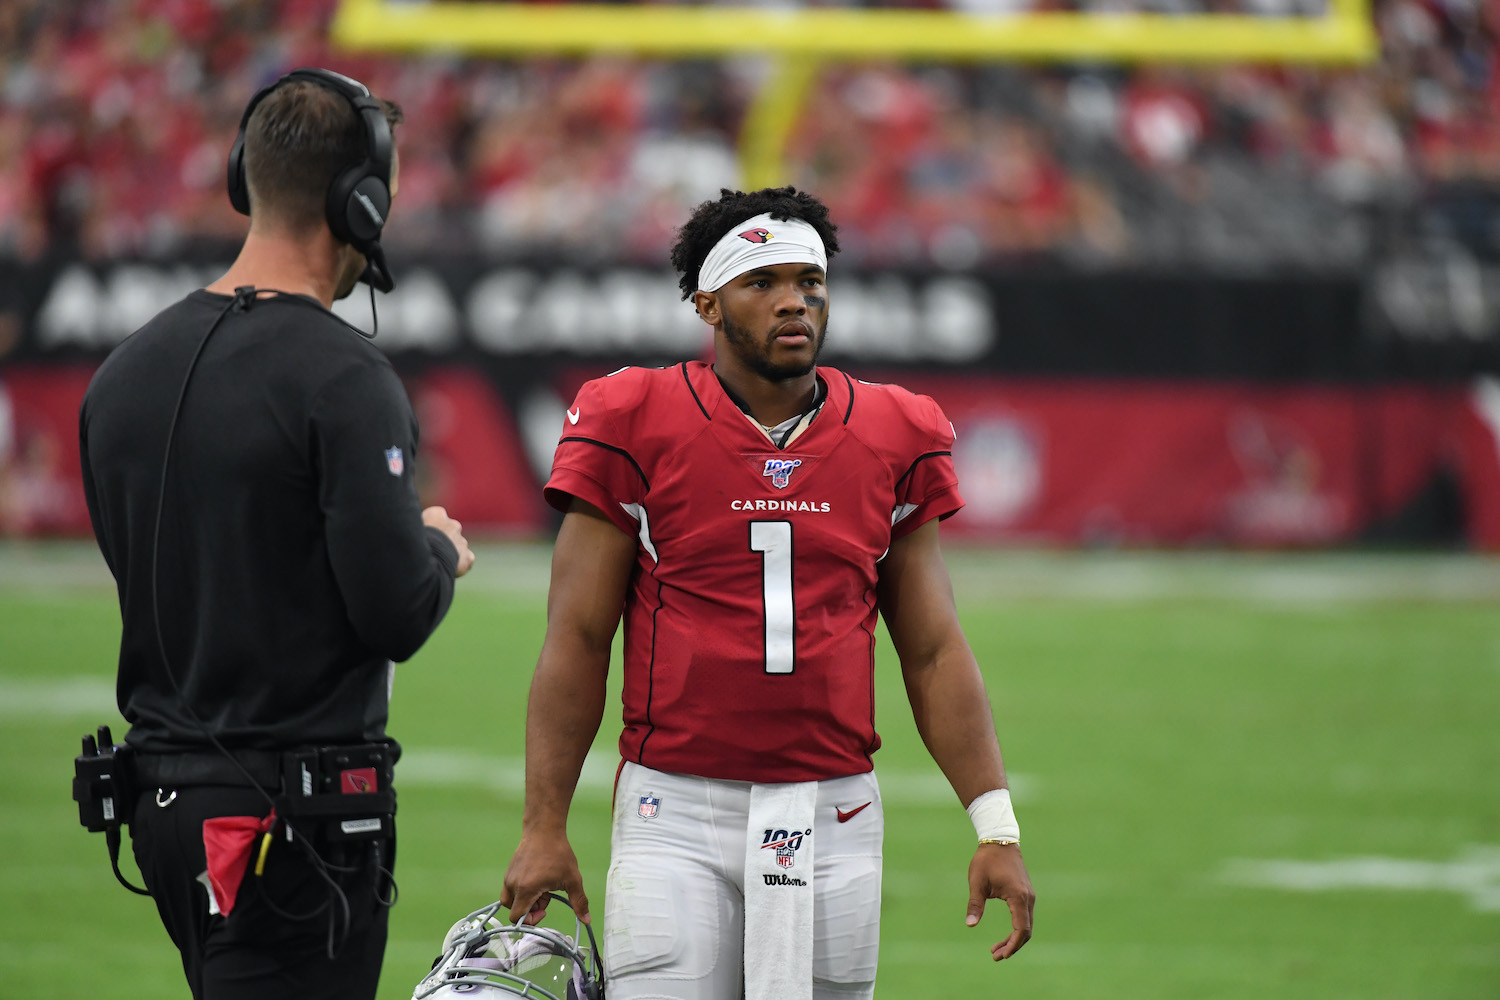 Kyler Murray chose football over baseball and became unique among first-round quarterbacks when he went No. 1 in the NFL draft.